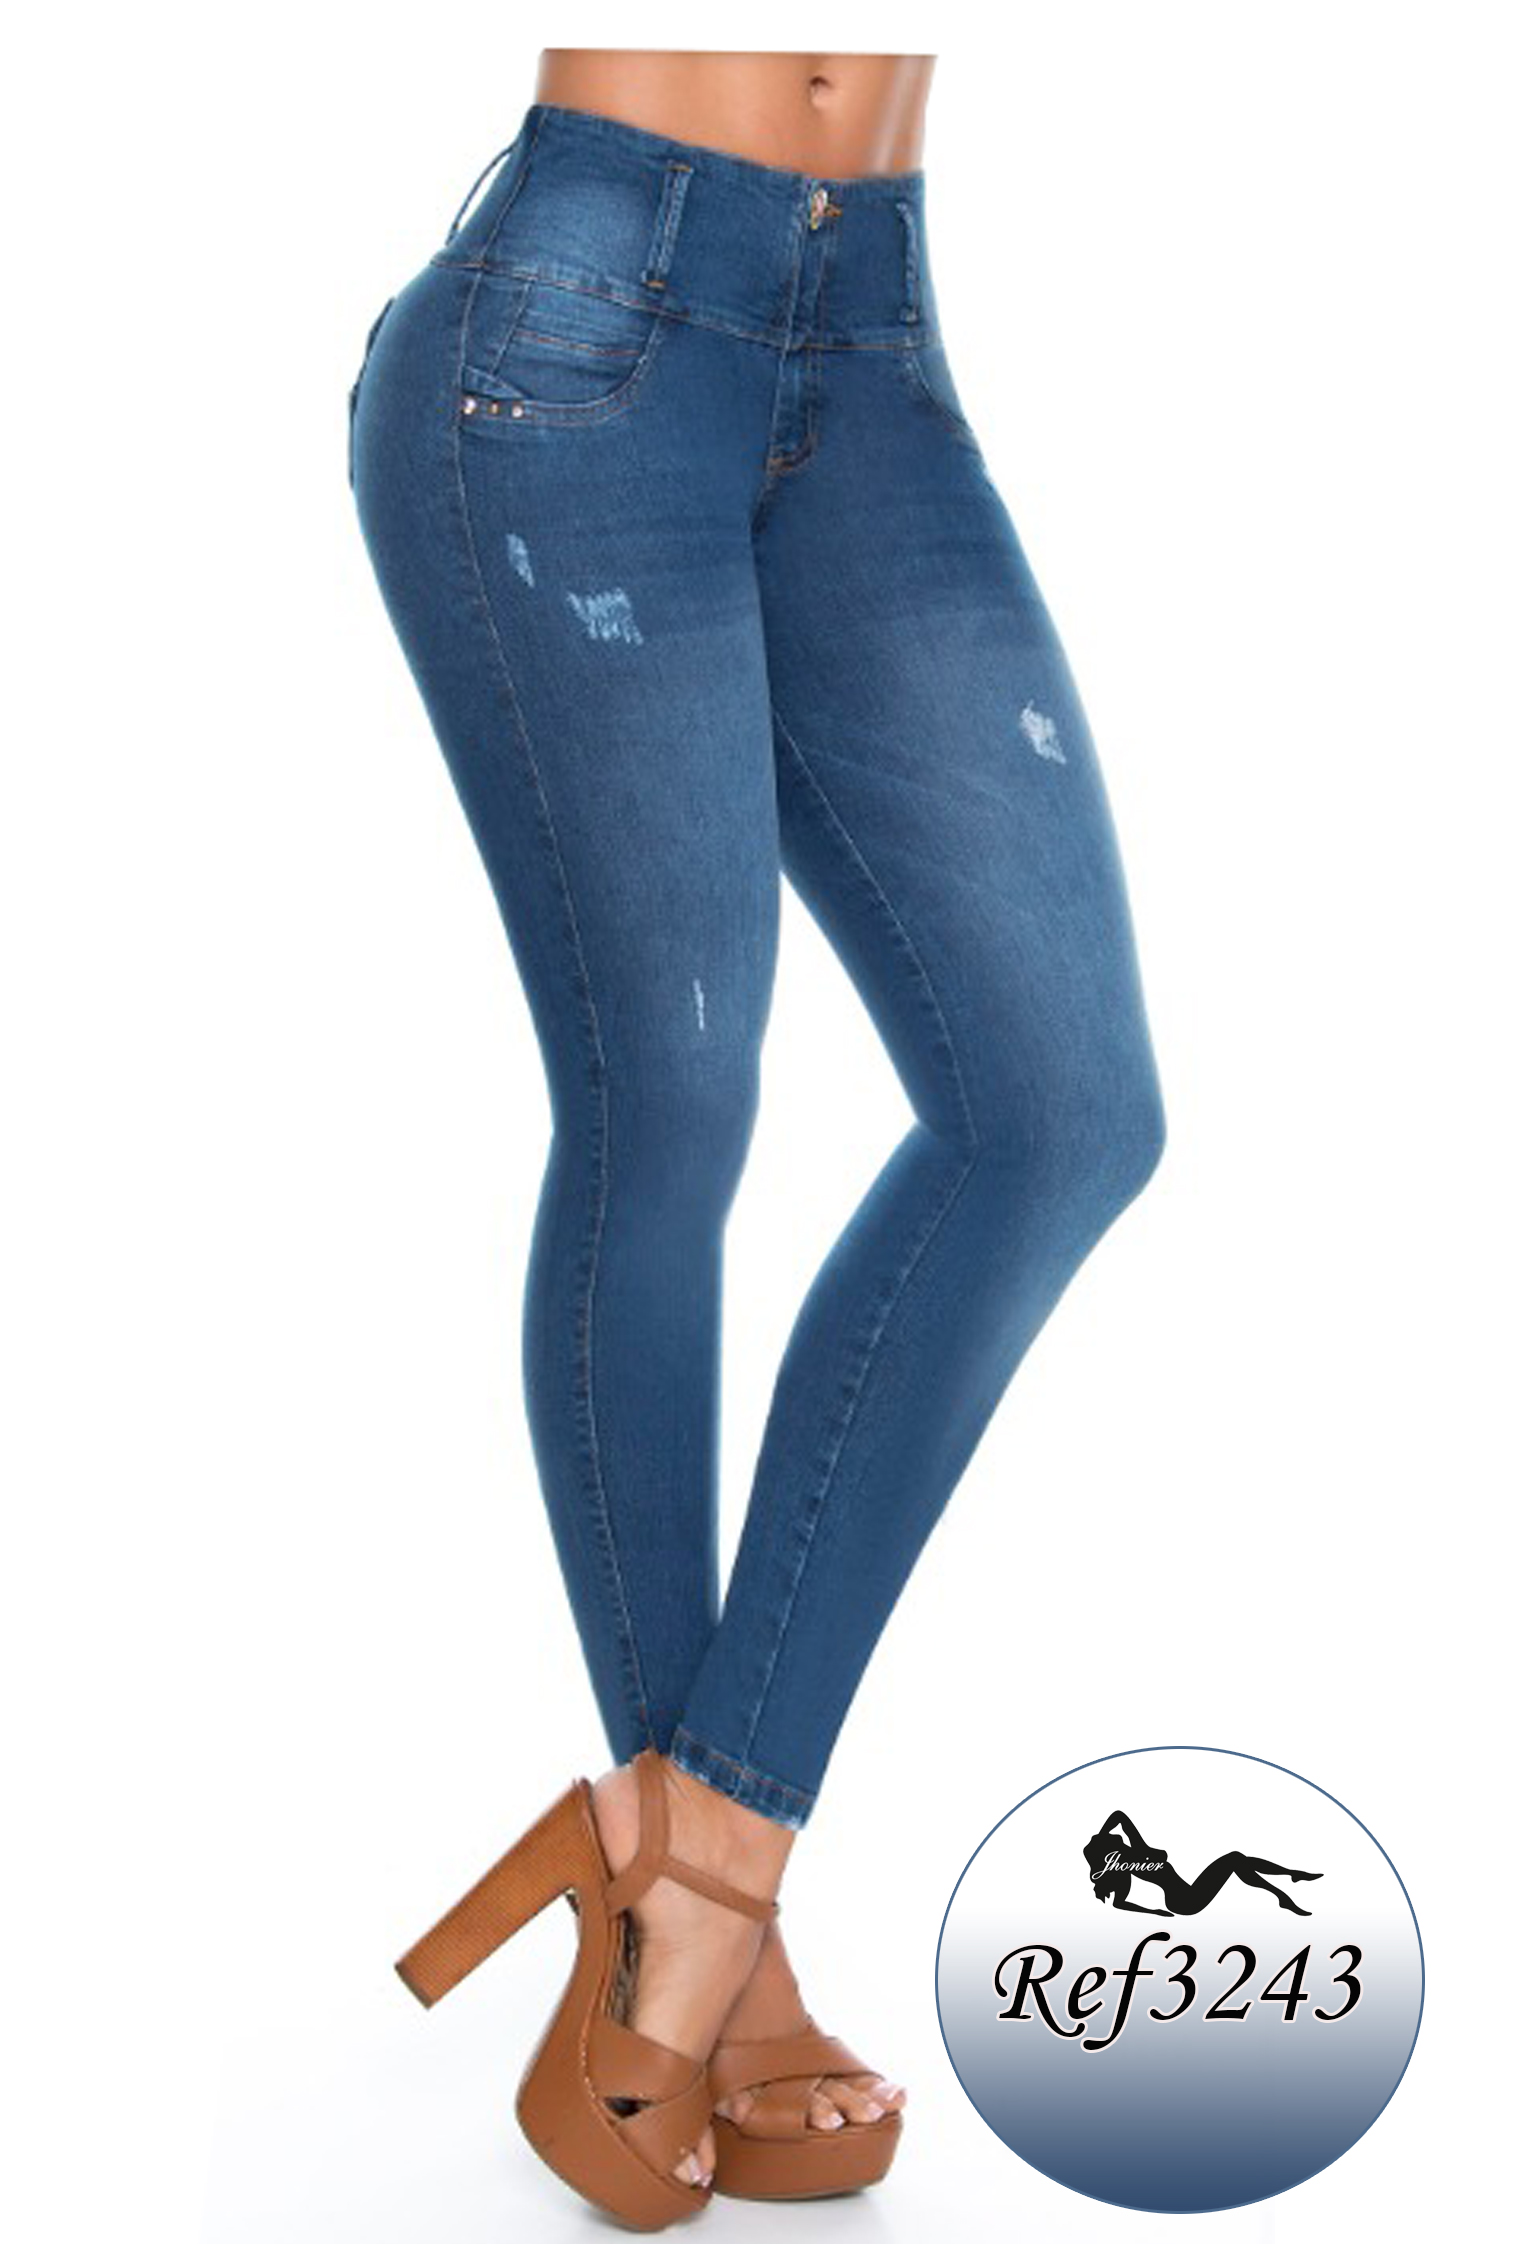 Jeans Colombiano 3243